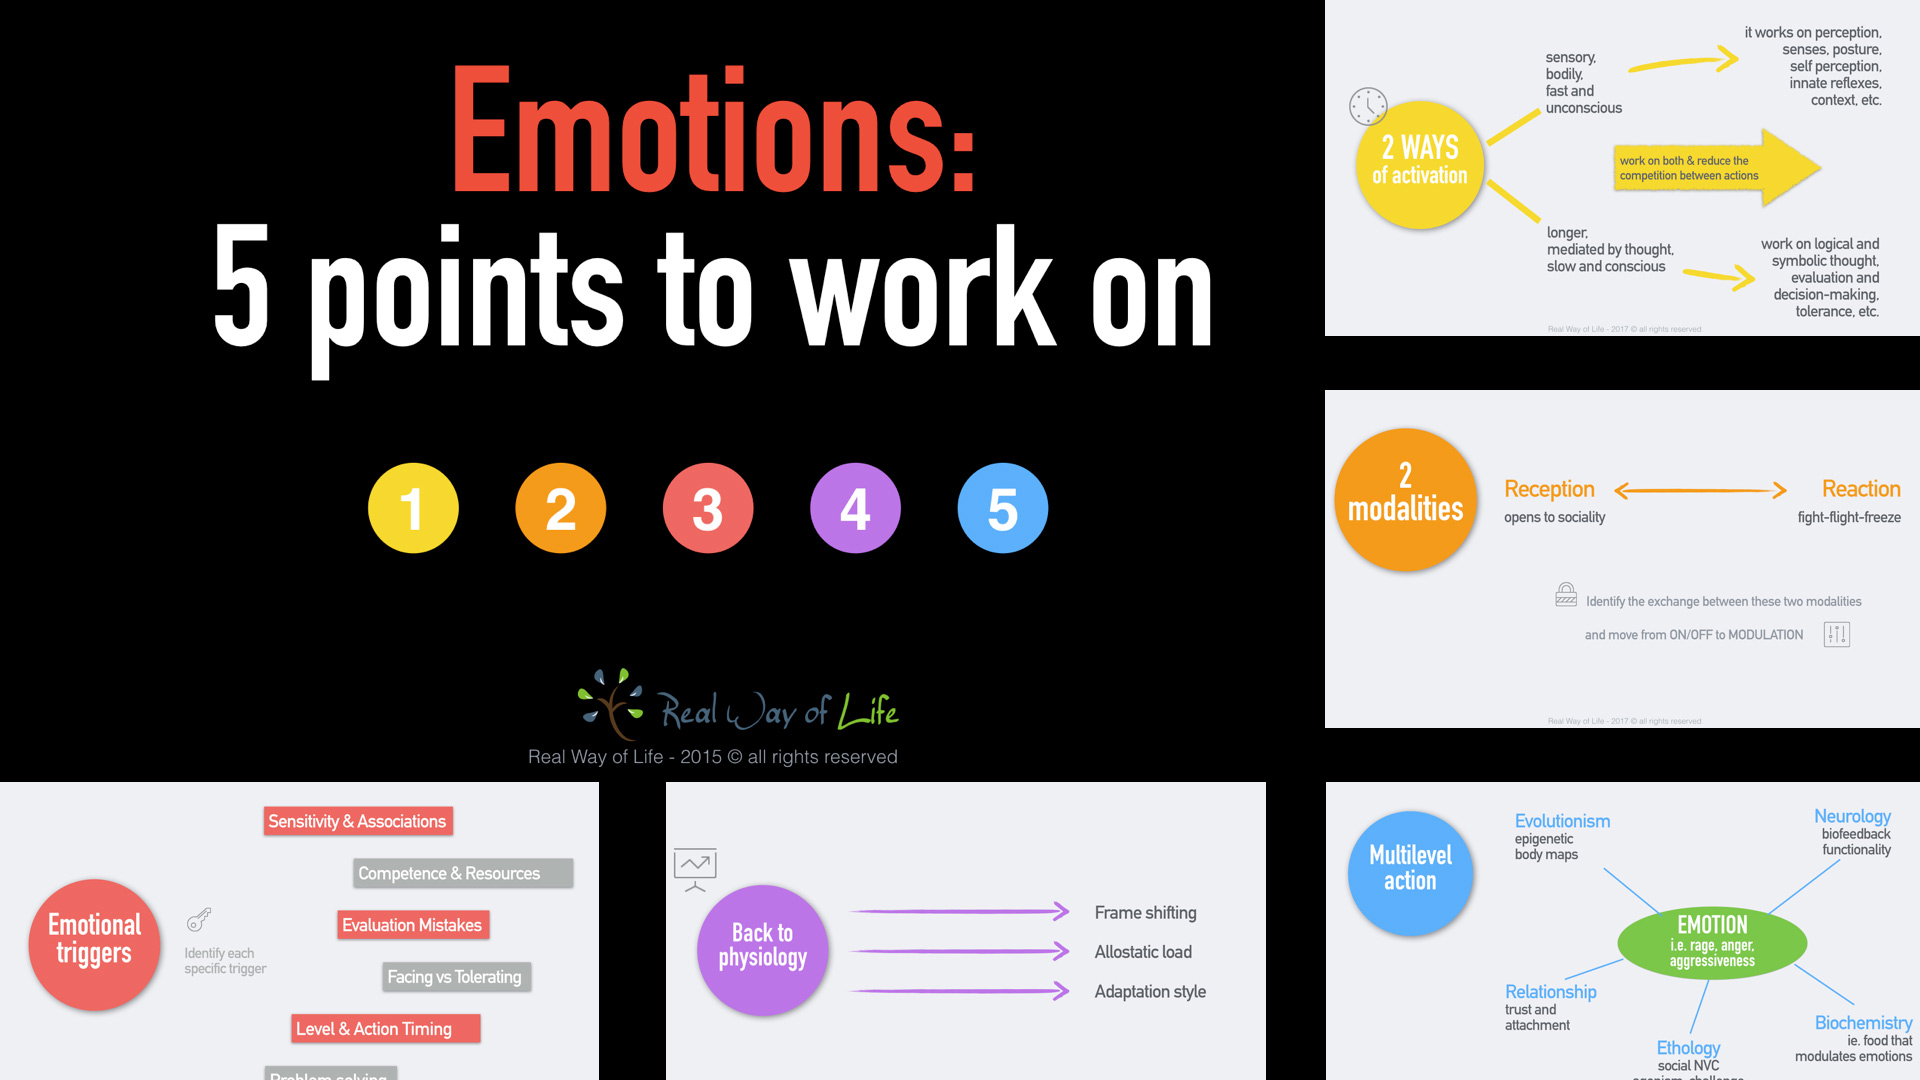 real way of life articles video emotions 5 points to work on